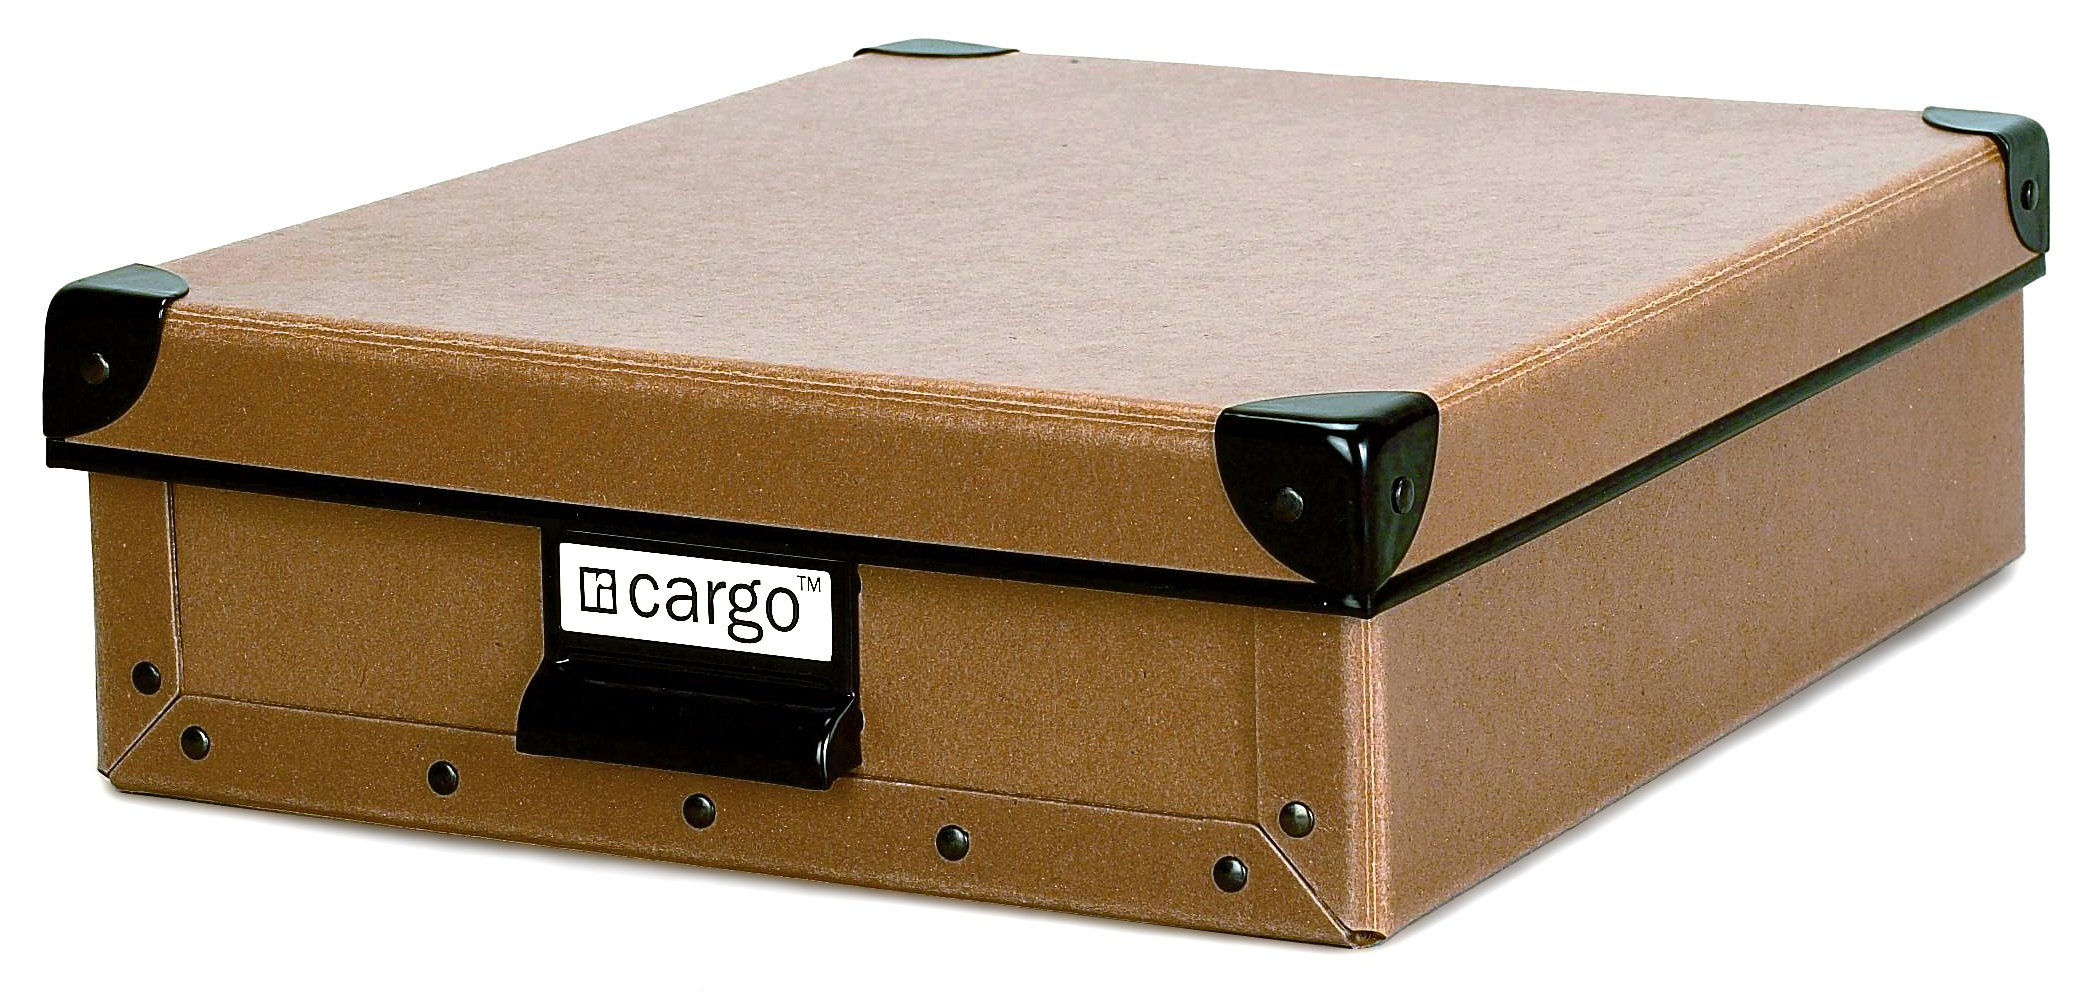 Cargo Naturals Stationery Box, Nutmeg, 3-3/4 by 12-1/2 by 10-1/2-Inch